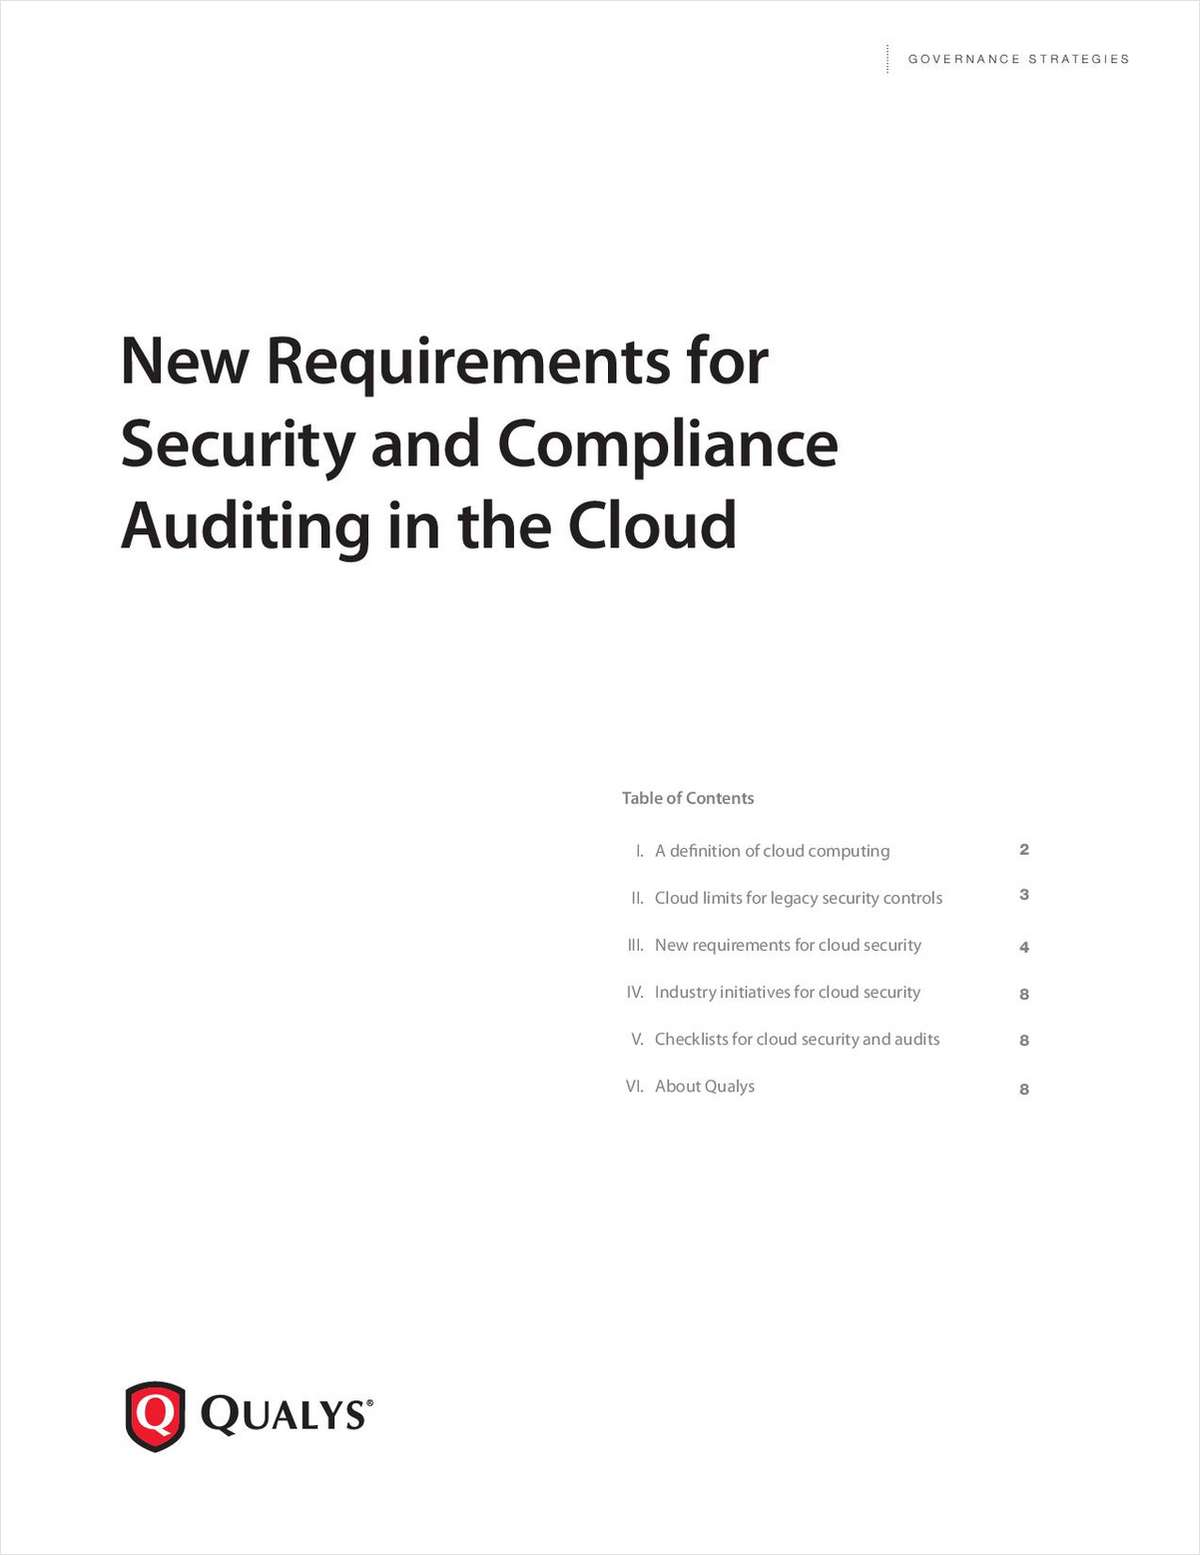 New Requirements for Security and Compliance Auditing in the Cloud